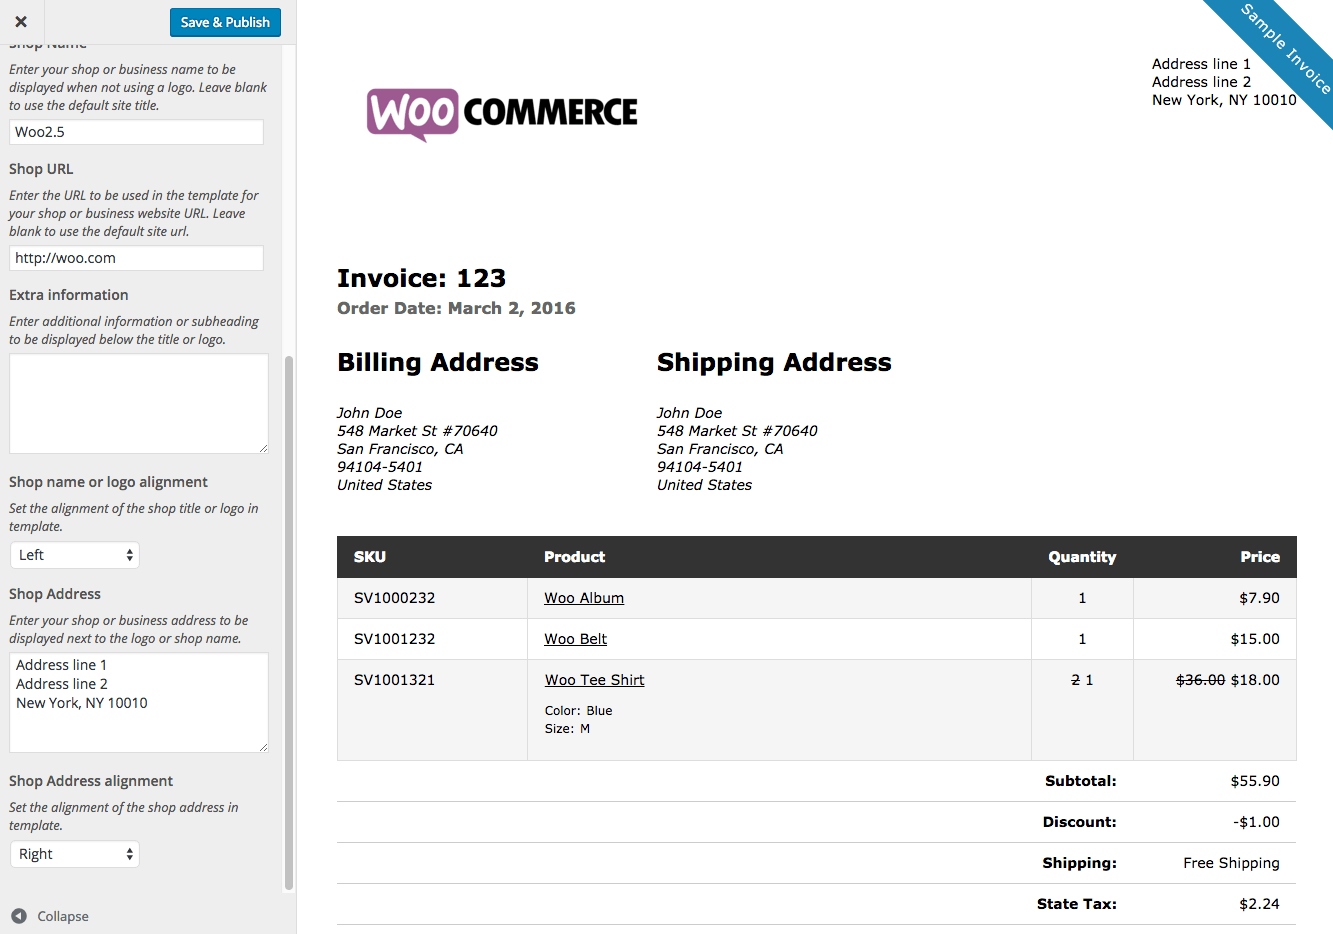 Usdgus  Remarkable Print Invoices Amp Packing Lists  Woocommerce With Exquisite Woocommerce Print Invoices  Packing Lists Customizer With Beauteous Sample Invoice For Contract Work Also How To Layout An Invoice In Addition Letter For Invoice Payment And Mexico Commercial Invoice As Well As The Meaning Of Invoice Additionally Ebay Invoice Software From Woocommercecom With Usdgus  Exquisite Print Invoices Amp Packing Lists  Woocommerce With Beauteous Woocommerce Print Invoices  Packing Lists Customizer And Remarkable Sample Invoice For Contract Work Also How To Layout An Invoice In Addition Letter For Invoice Payment From Woocommercecom